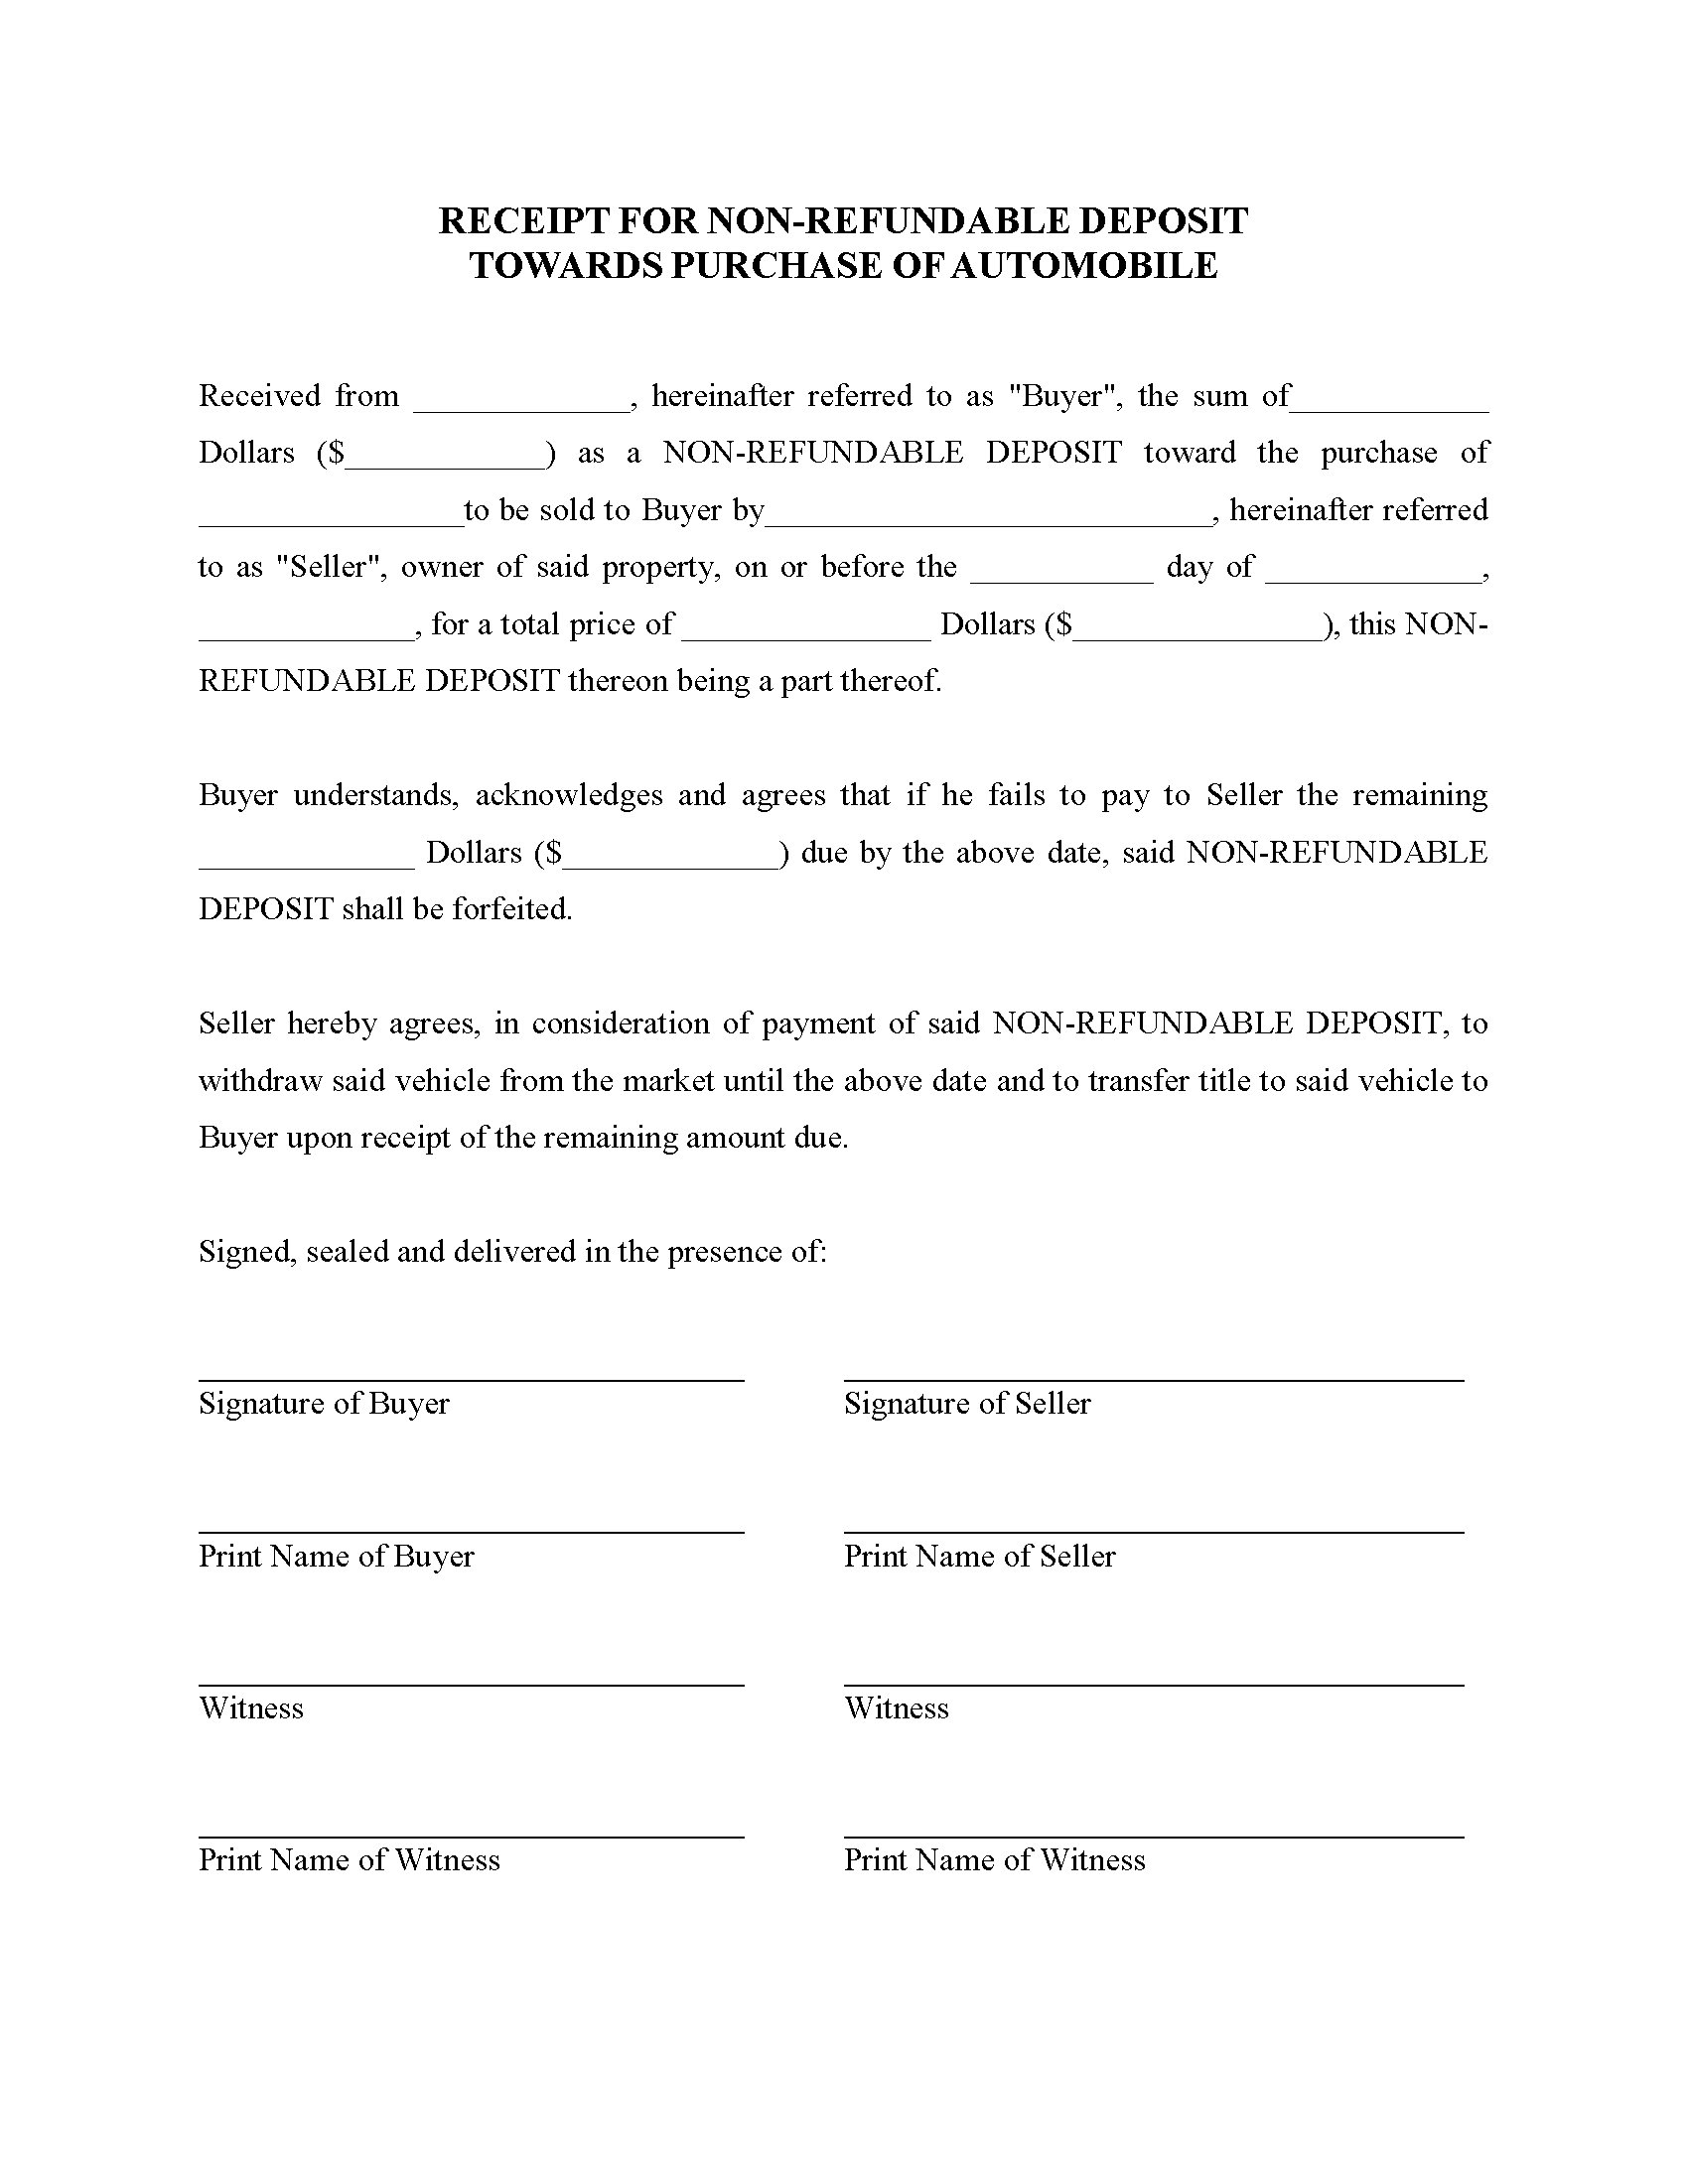 005 Awful Sale Agreement Template Australia Inspiration  Busines Horse Car ContractFull